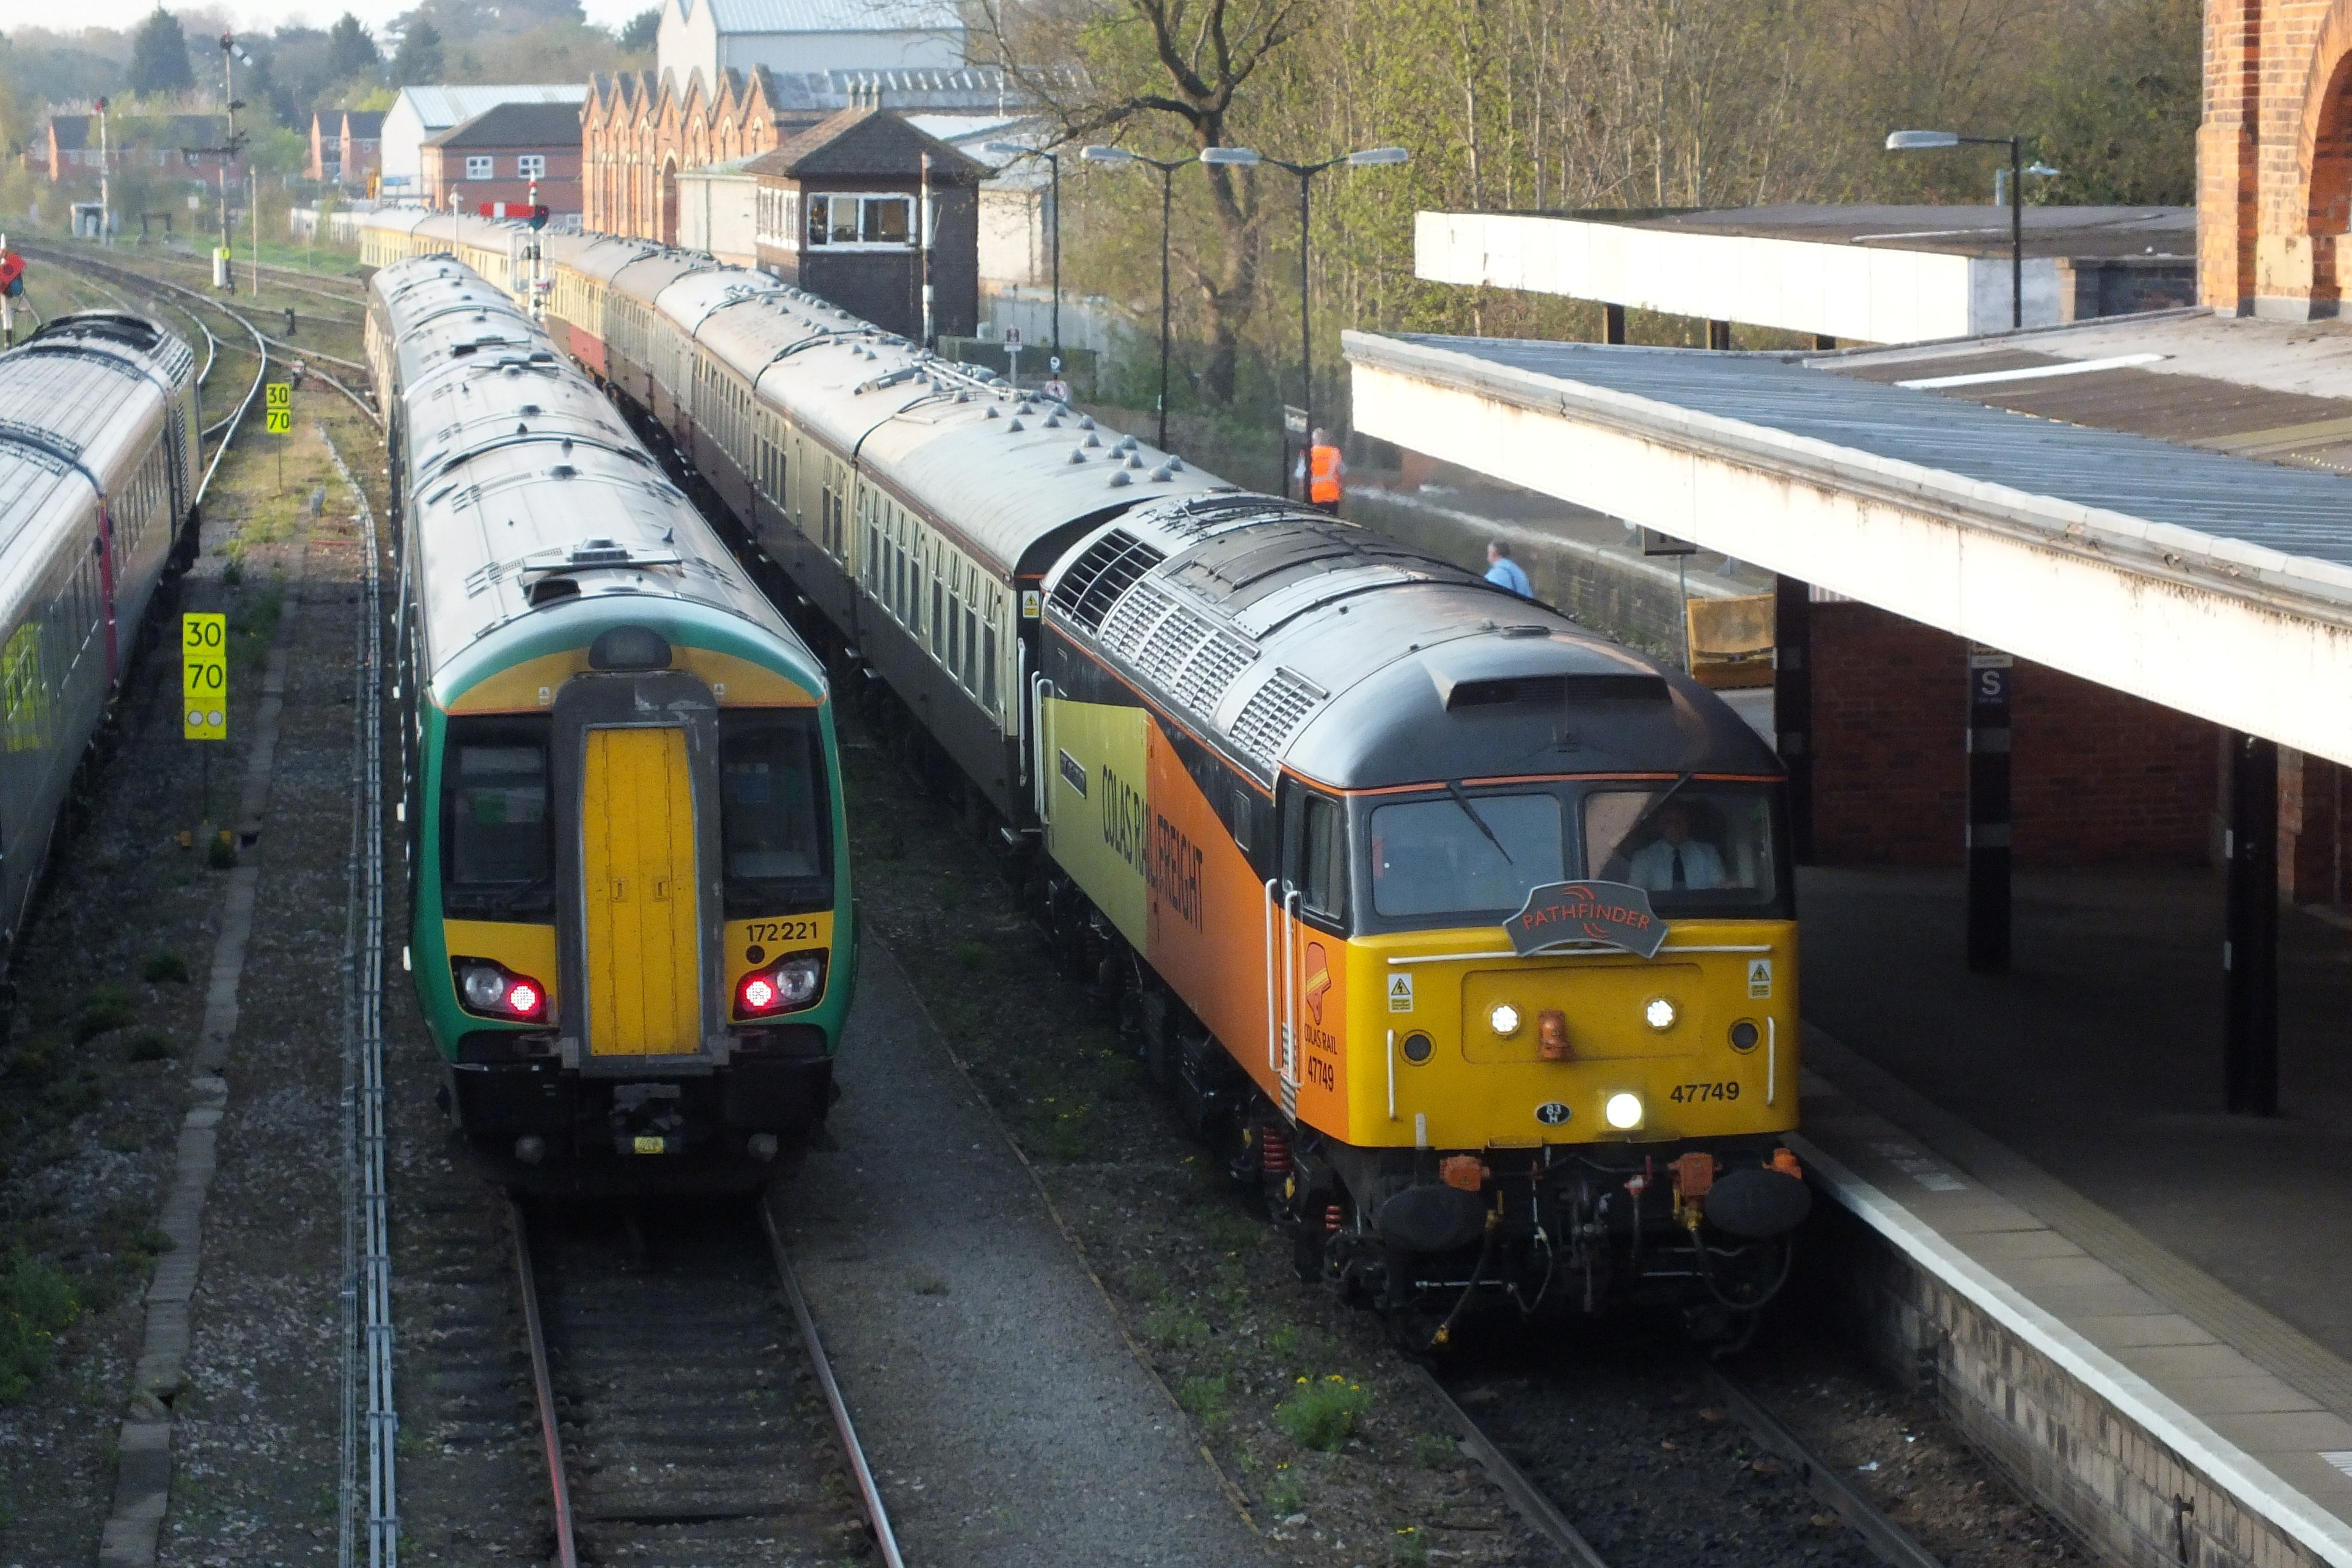 21 April 2018 Shrub Hill 126.jpg